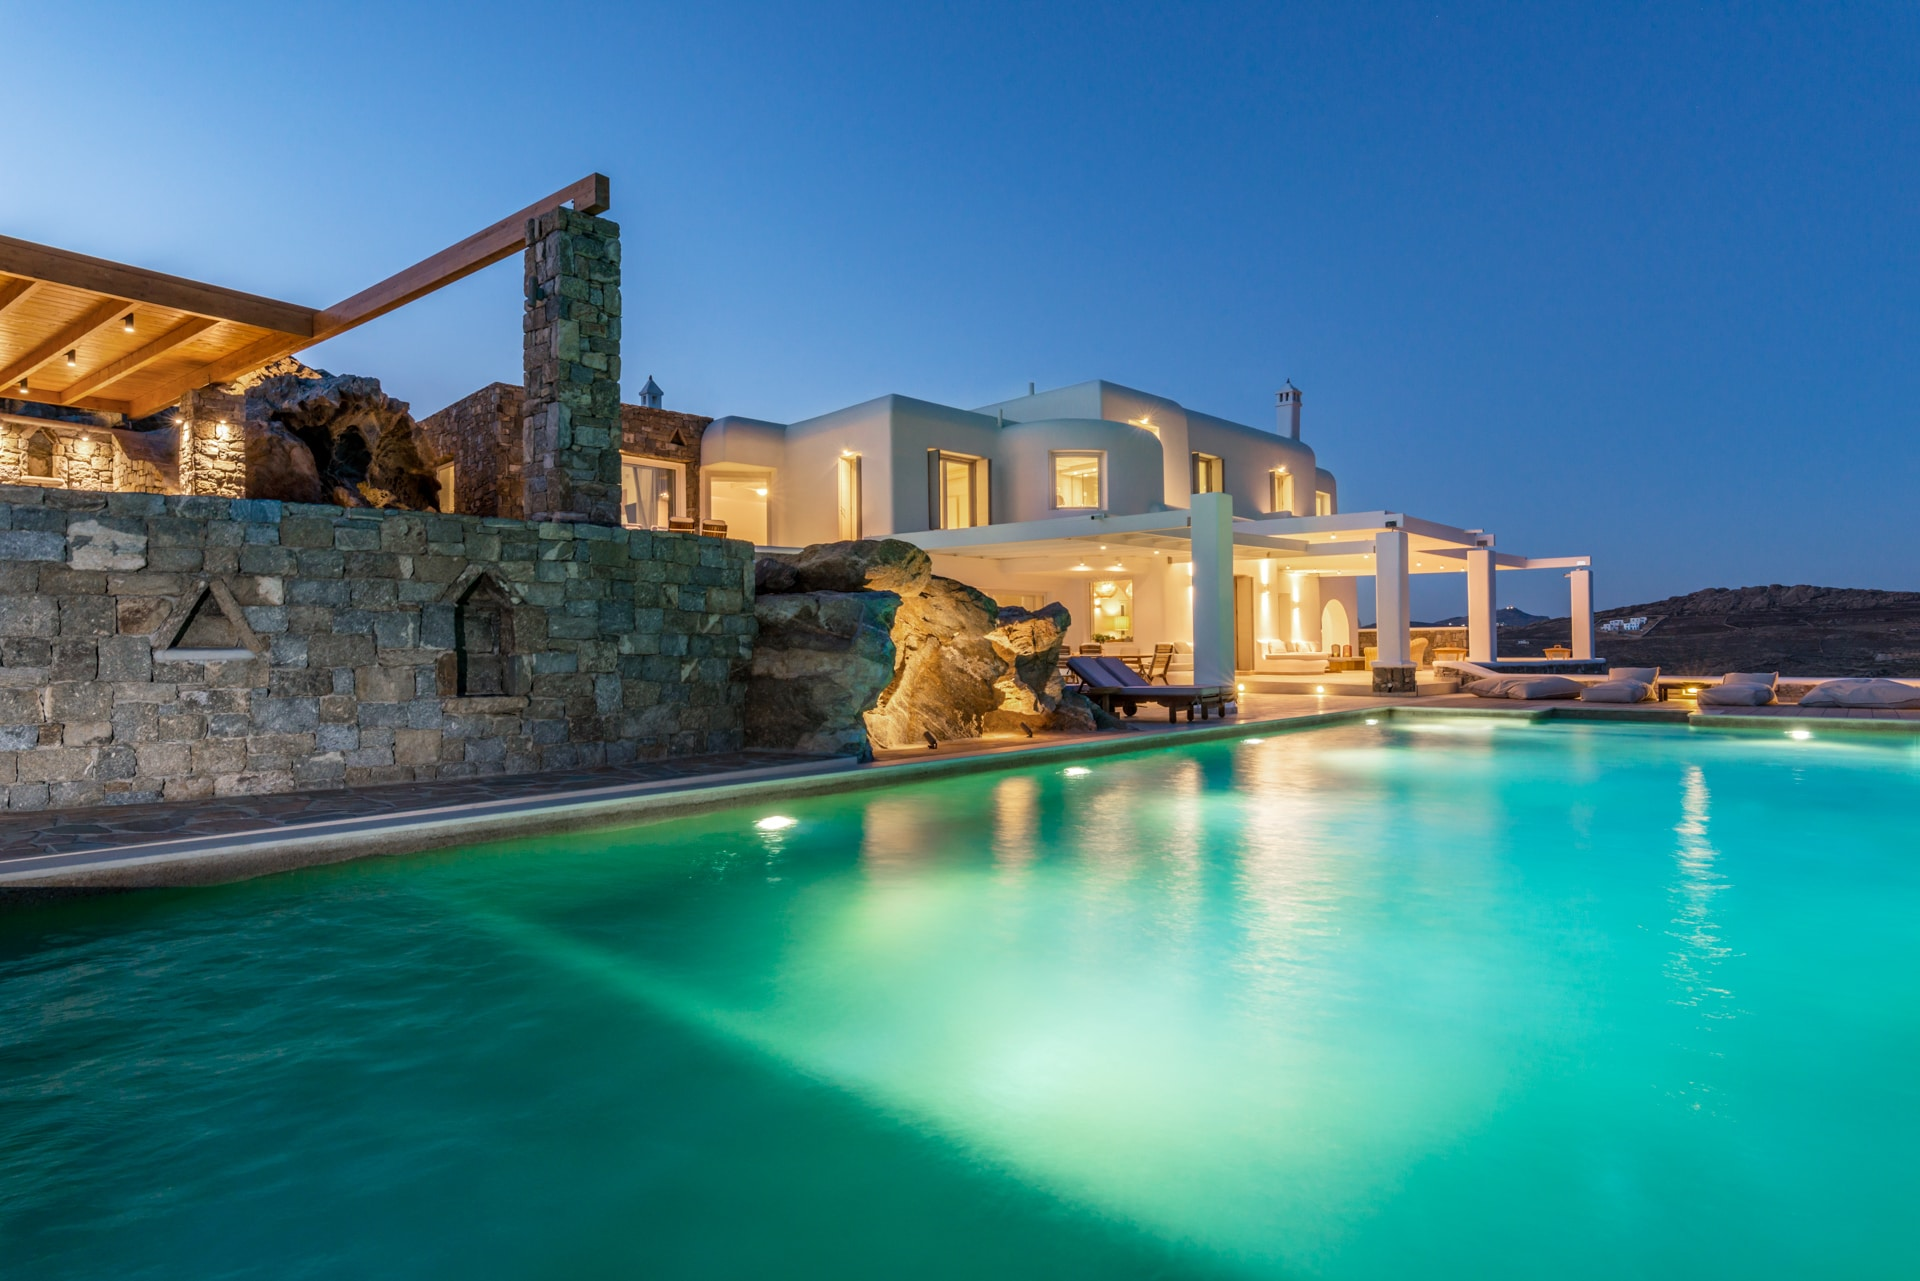 Stunning Villa with two infinity pools and amazing view